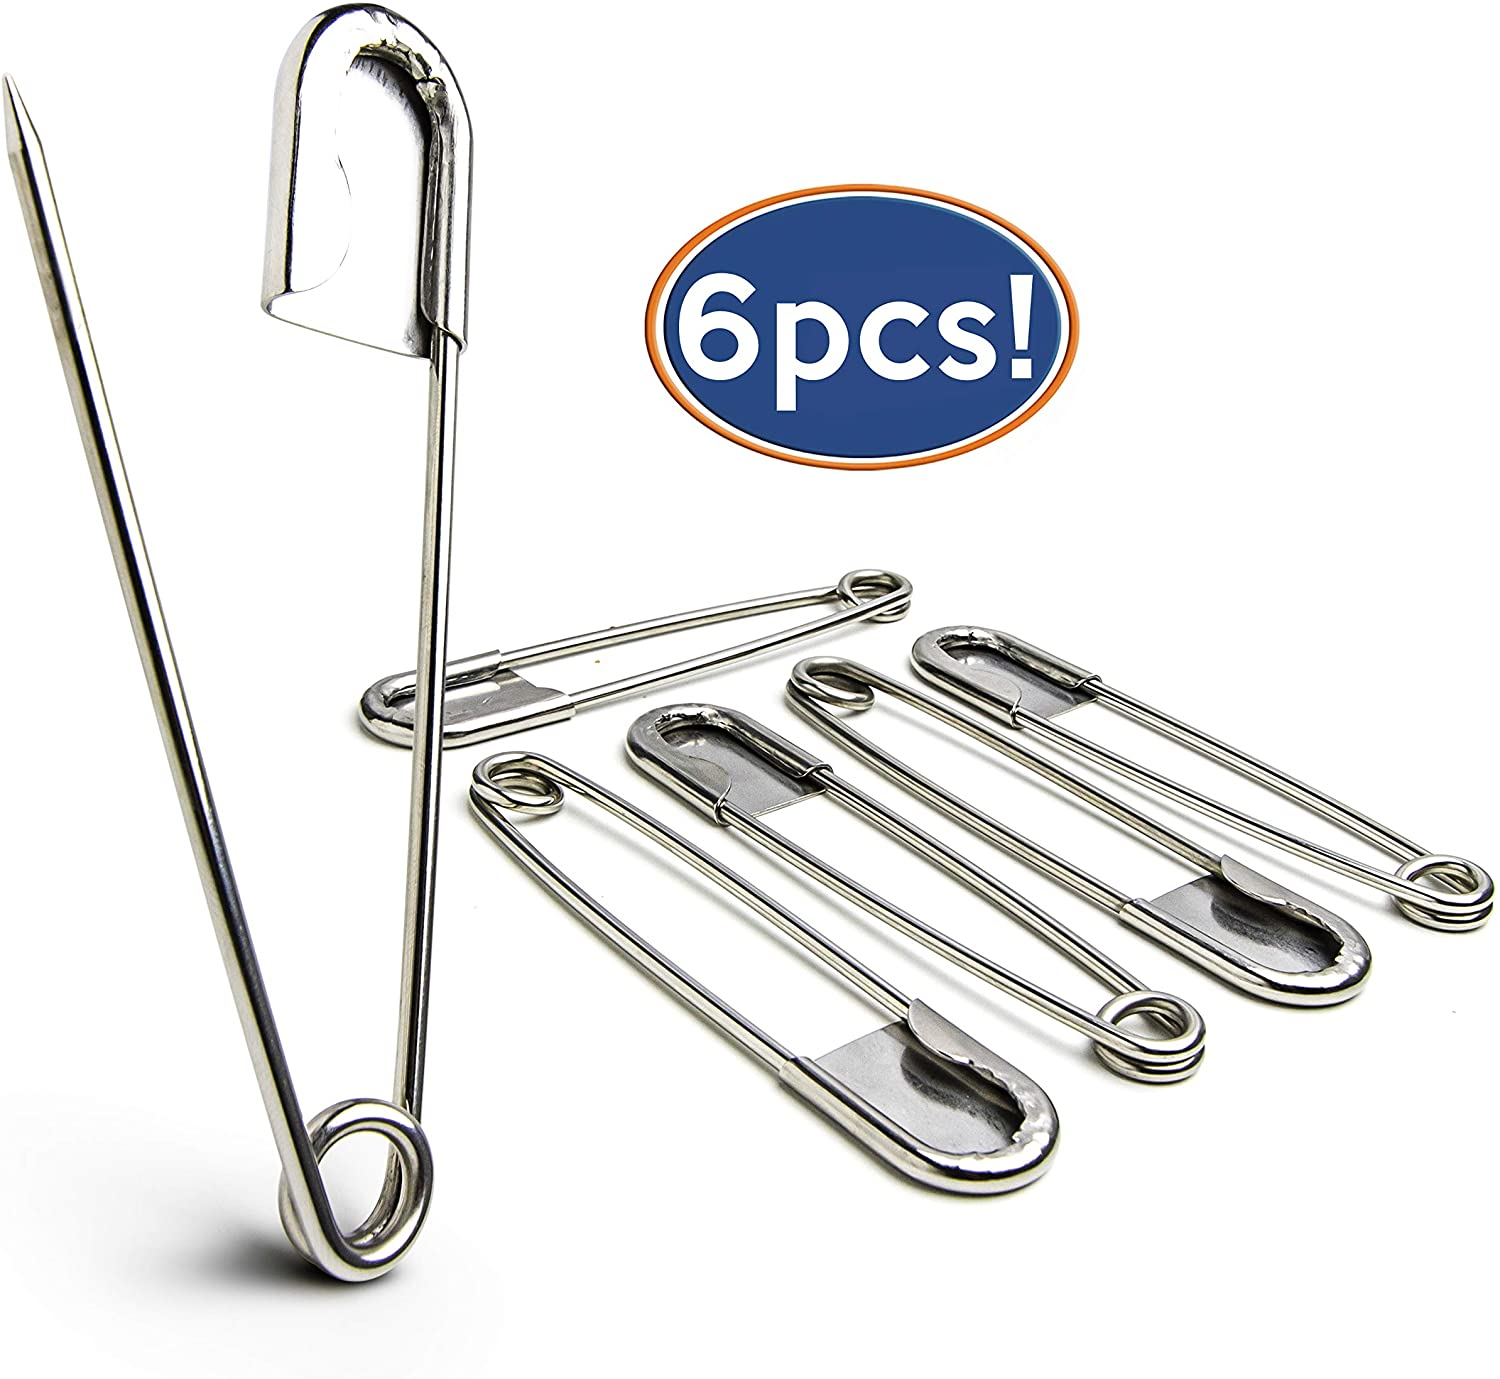 Skirts Kilts /& Crafts TRUEGOOD Extra Large 4Steel Safety Pin Set for Blankets Random Multicolor, 5-Pack